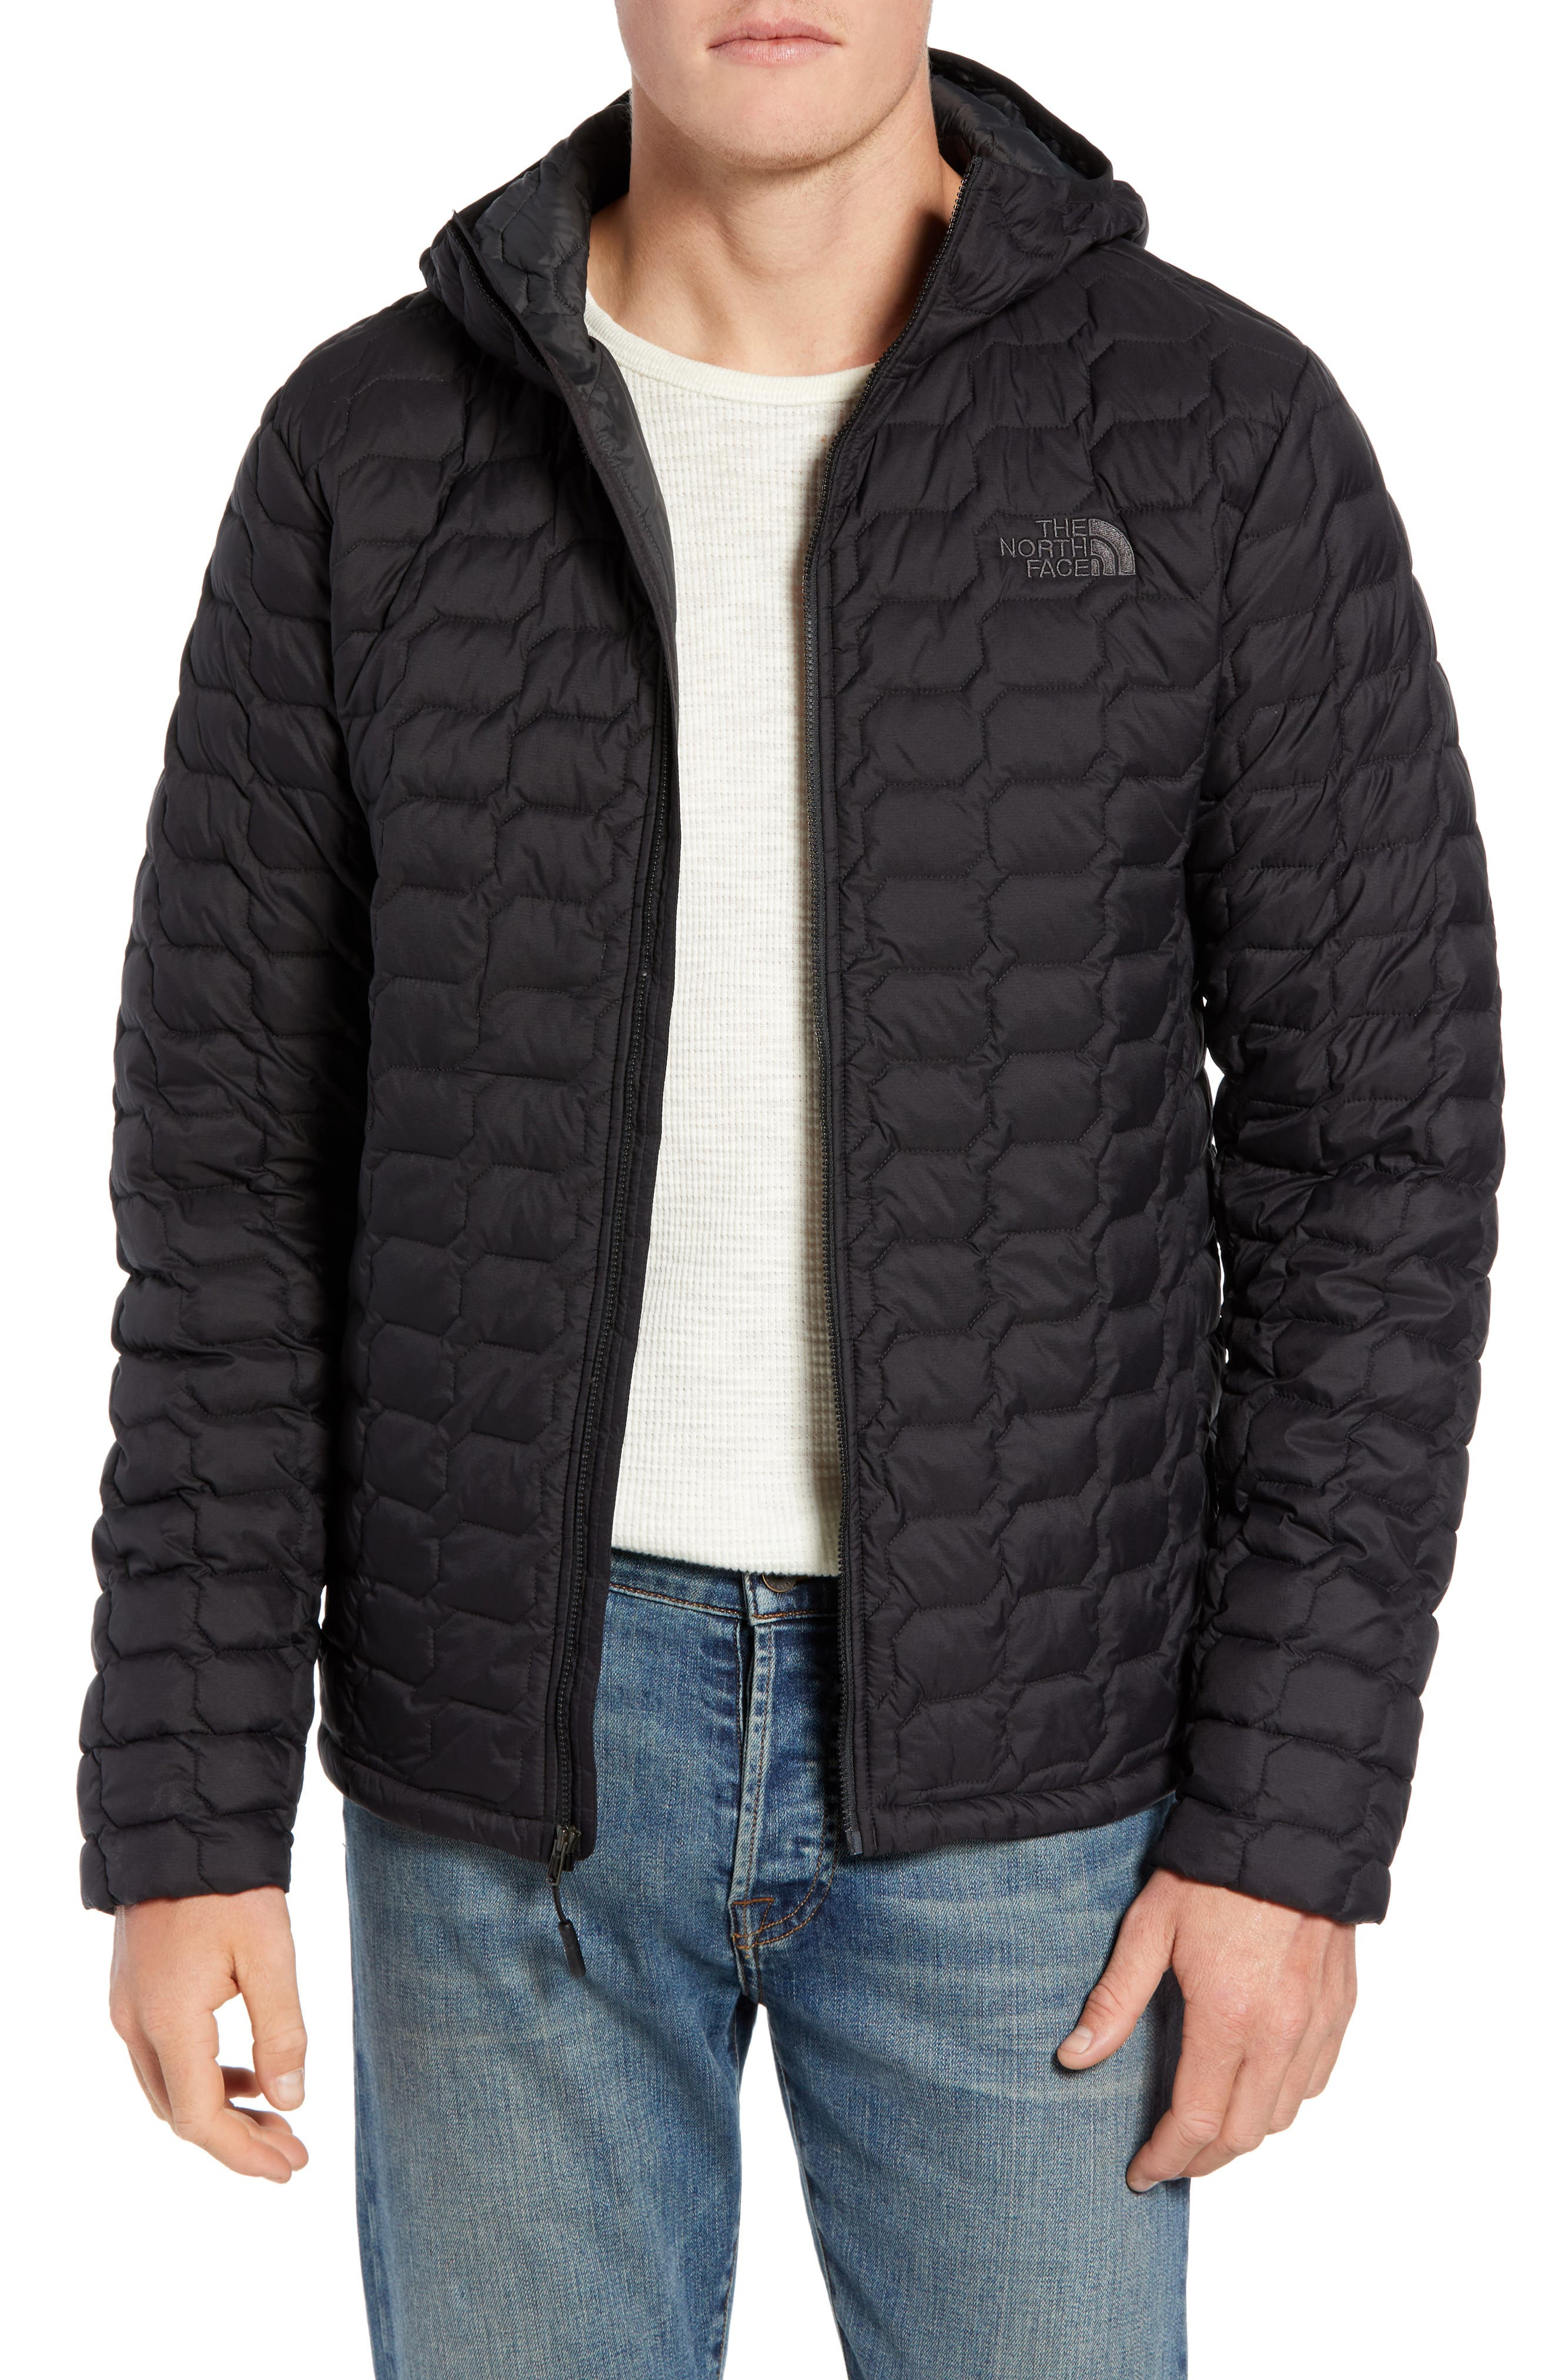 THE NORTH FACE, ThermoBall<sup>™</sup> Zip Hoodie, Main thumbnail 1, color, 001